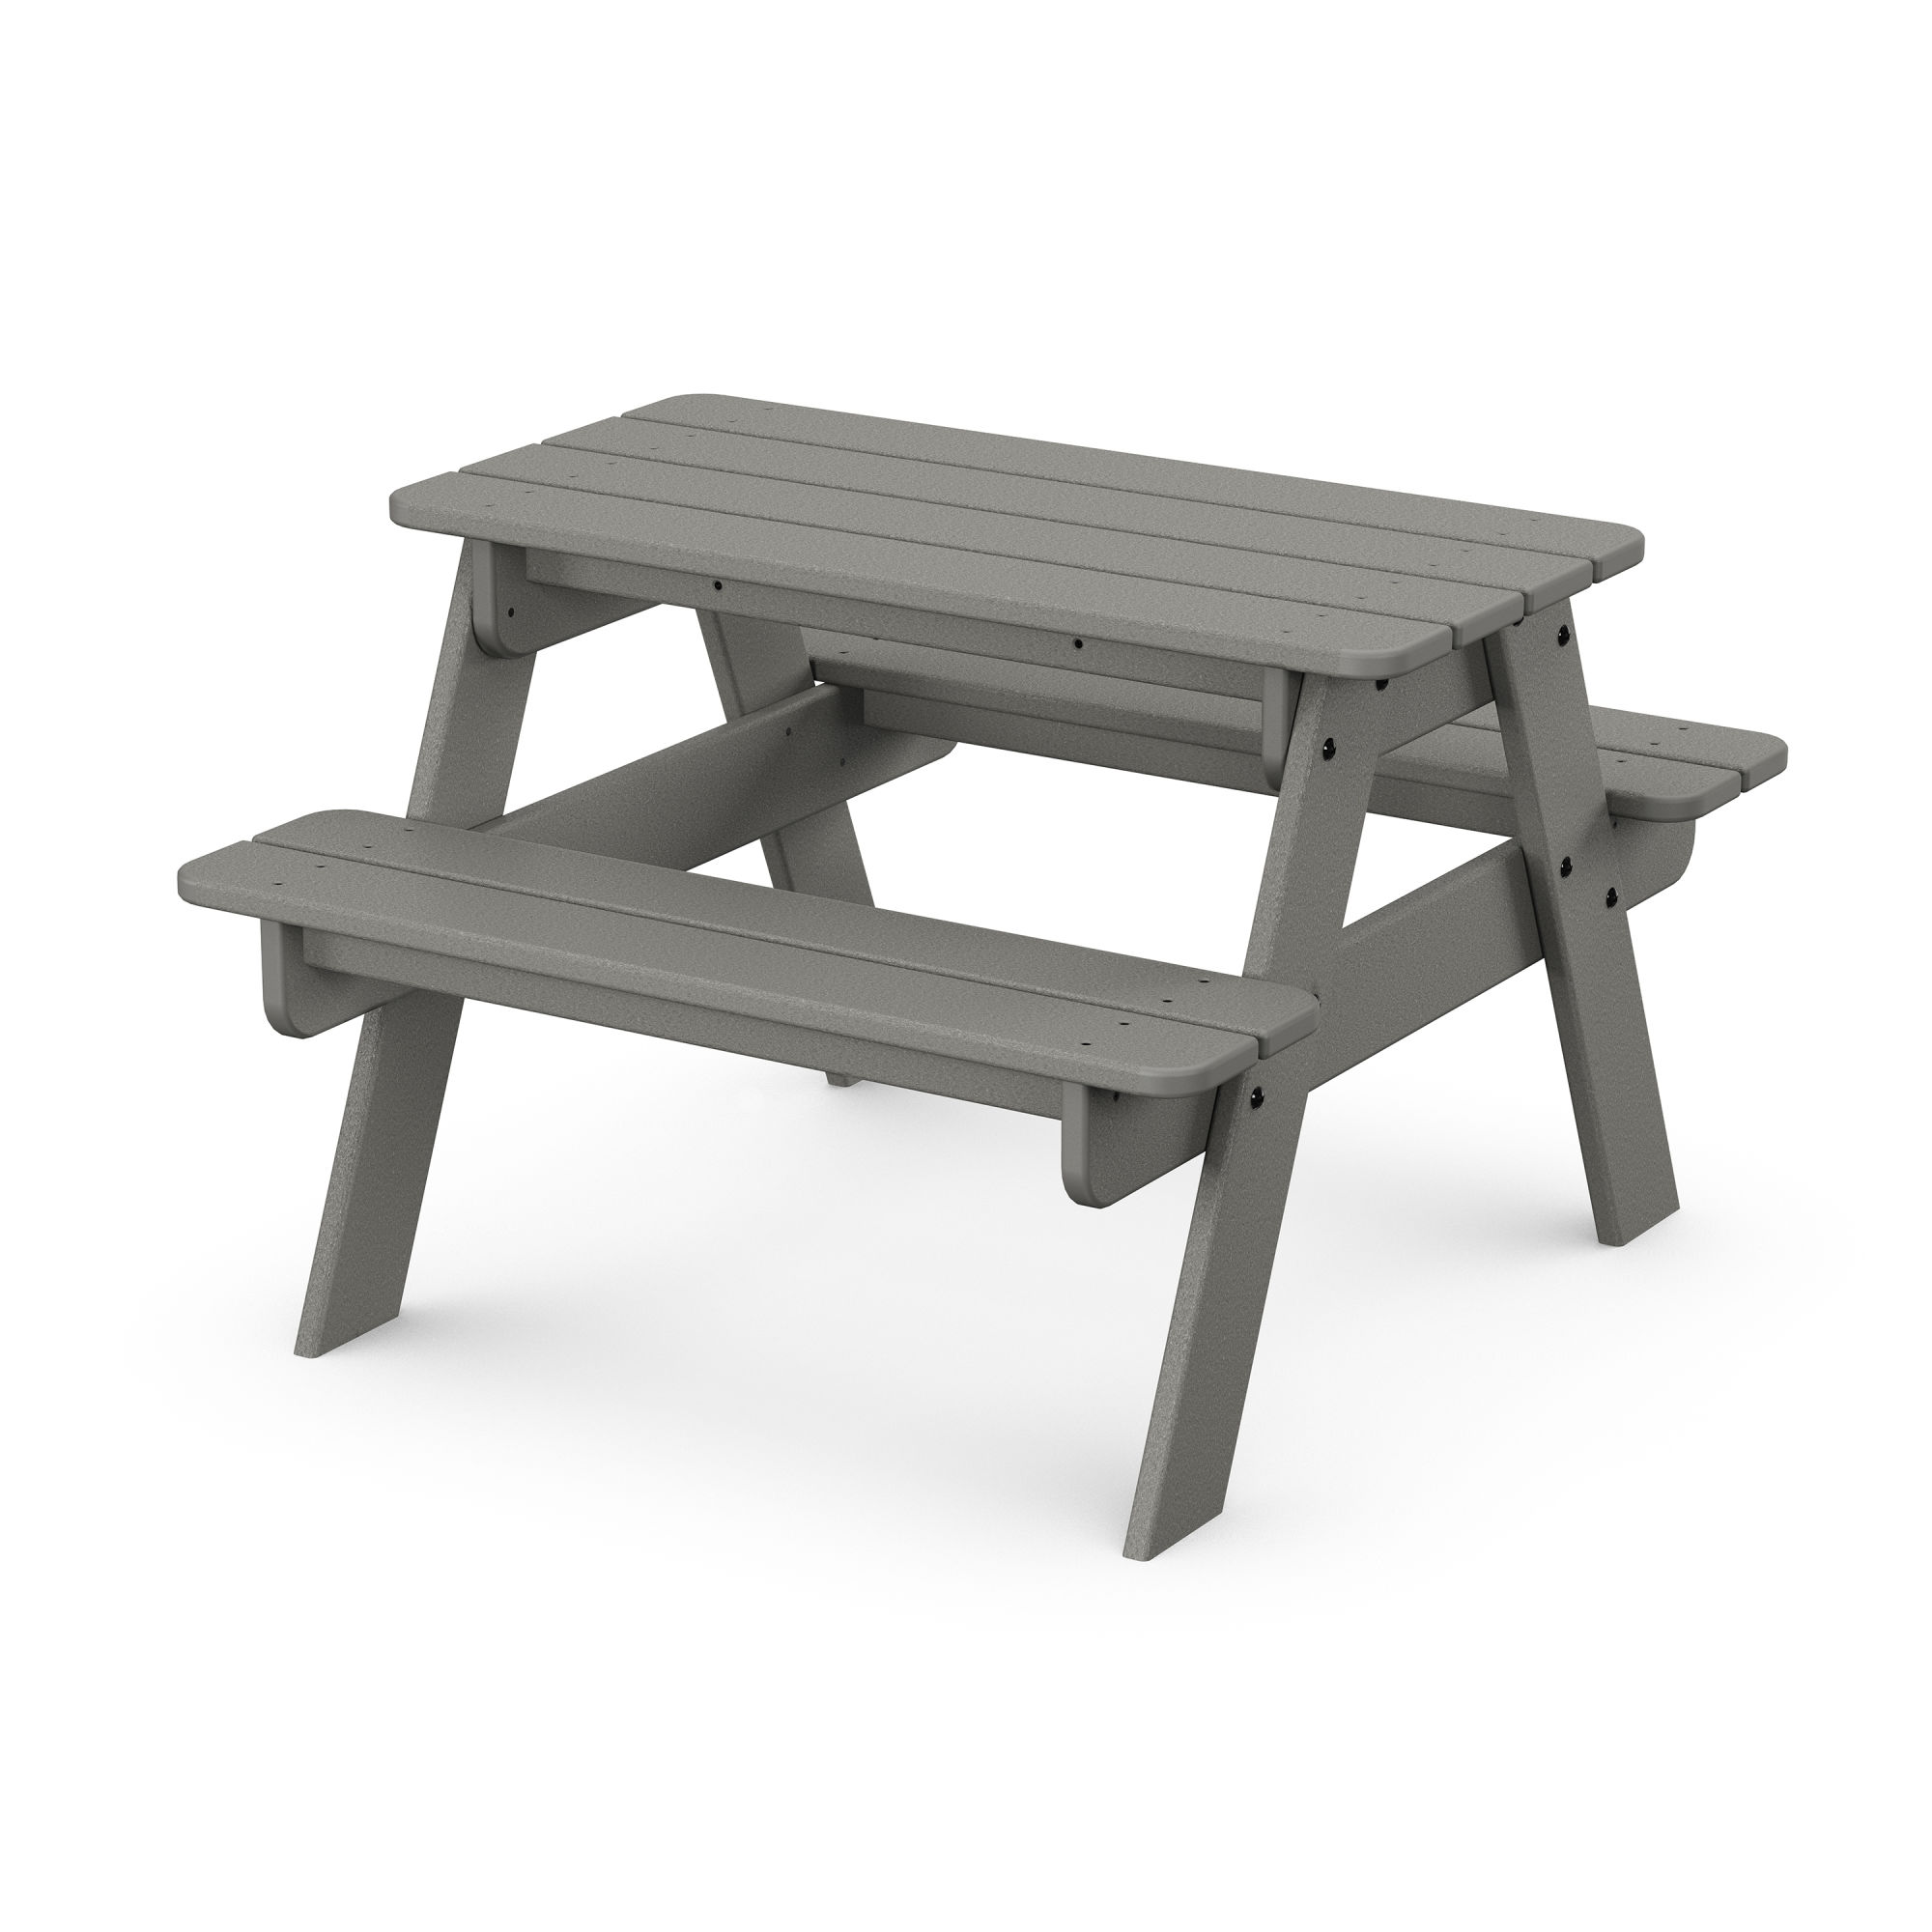 Stainless Steel Bathroom Vanity Cabinet, Kids Outdoor Picnic Table Polywood Official Store